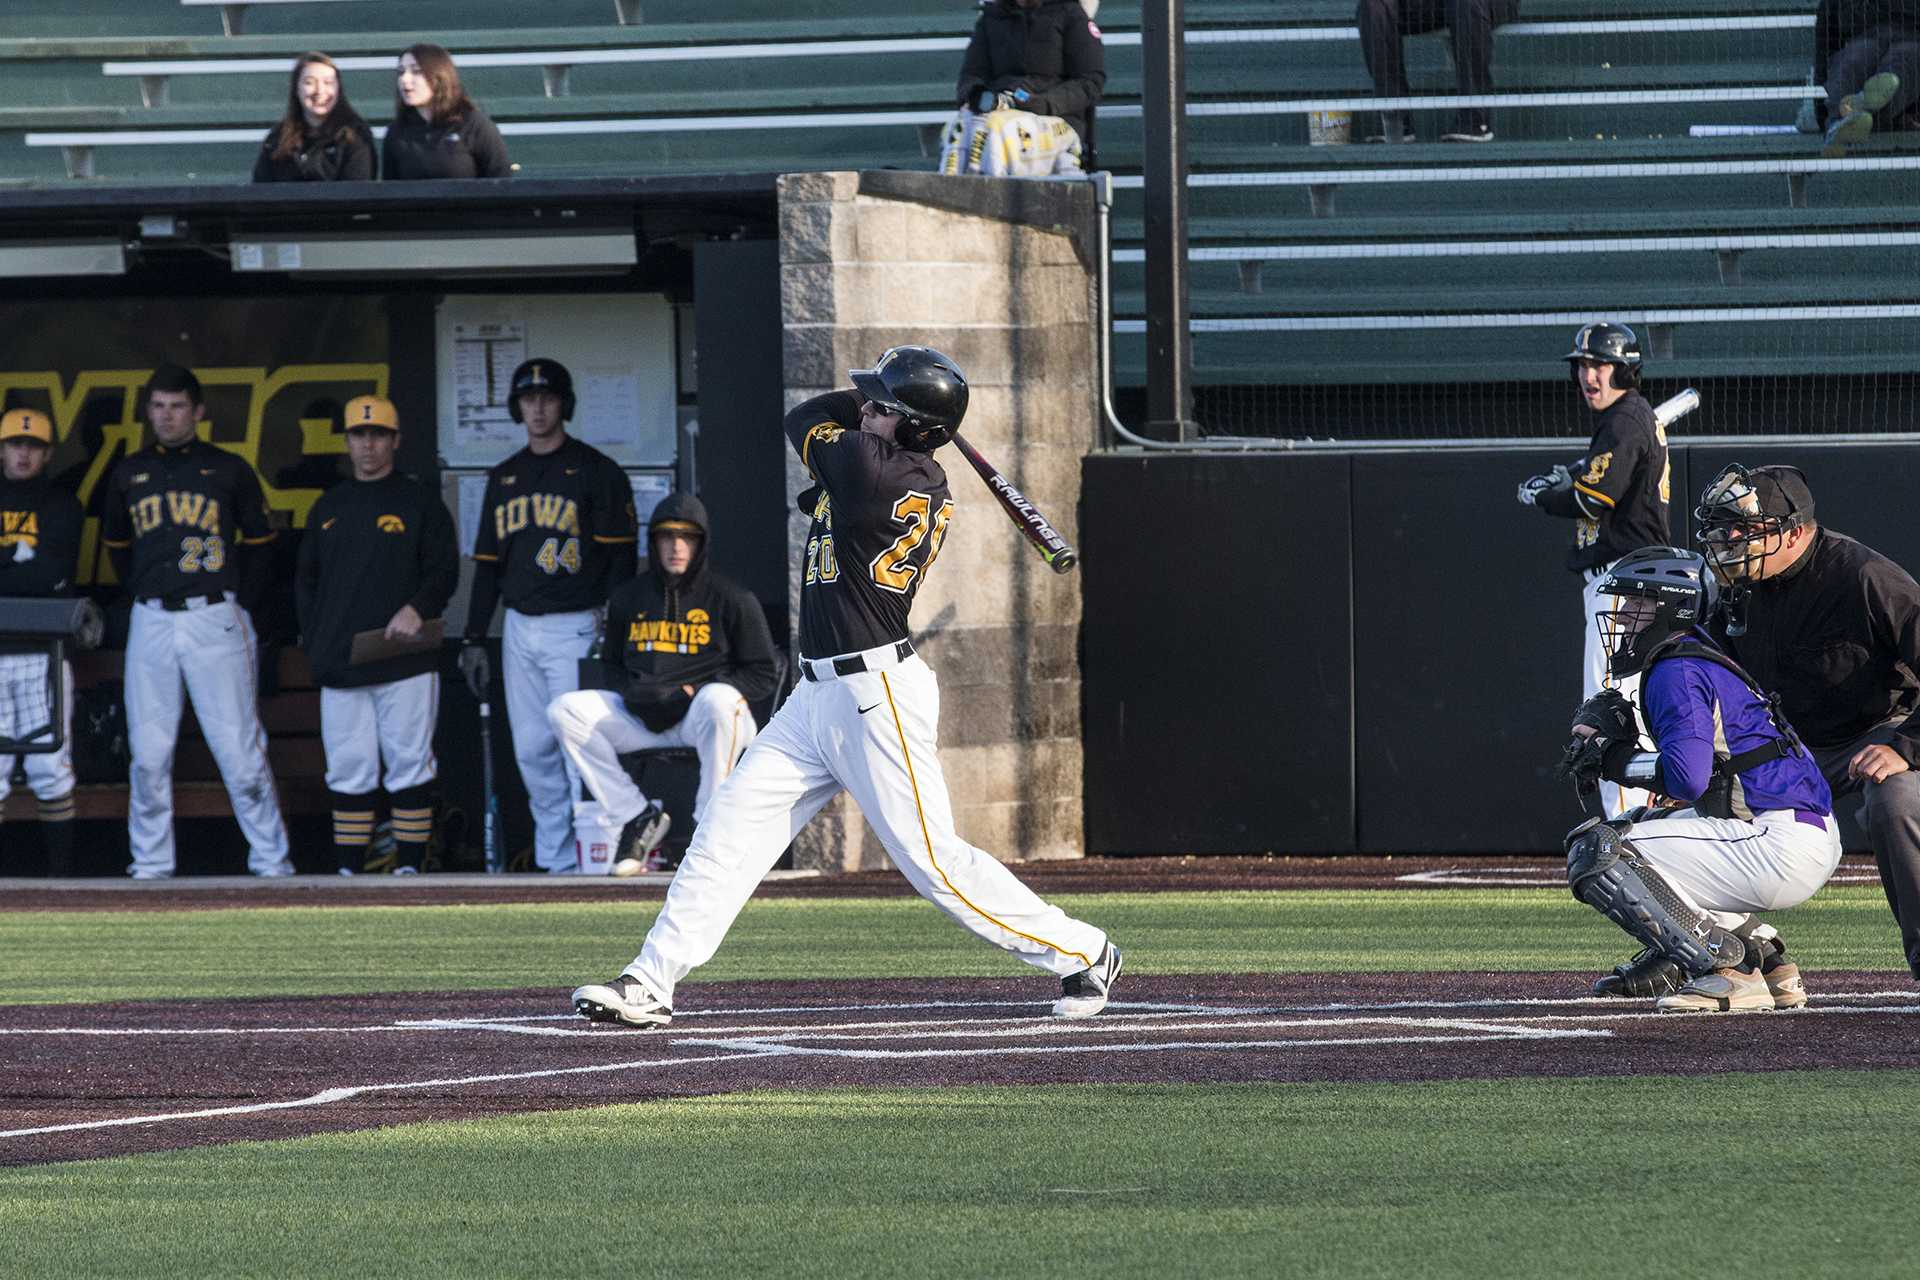 Iowa catcher Austin Guzzo swings at the pitch during men's baseball Iowa vs. Loras at Duane Banks Field on March 21, 2018. The Hawkeyes defeated the Duhawks 6-4. (Katina Zentz/The Daily Iowan) (Katina Zentz/Daily Iowan)